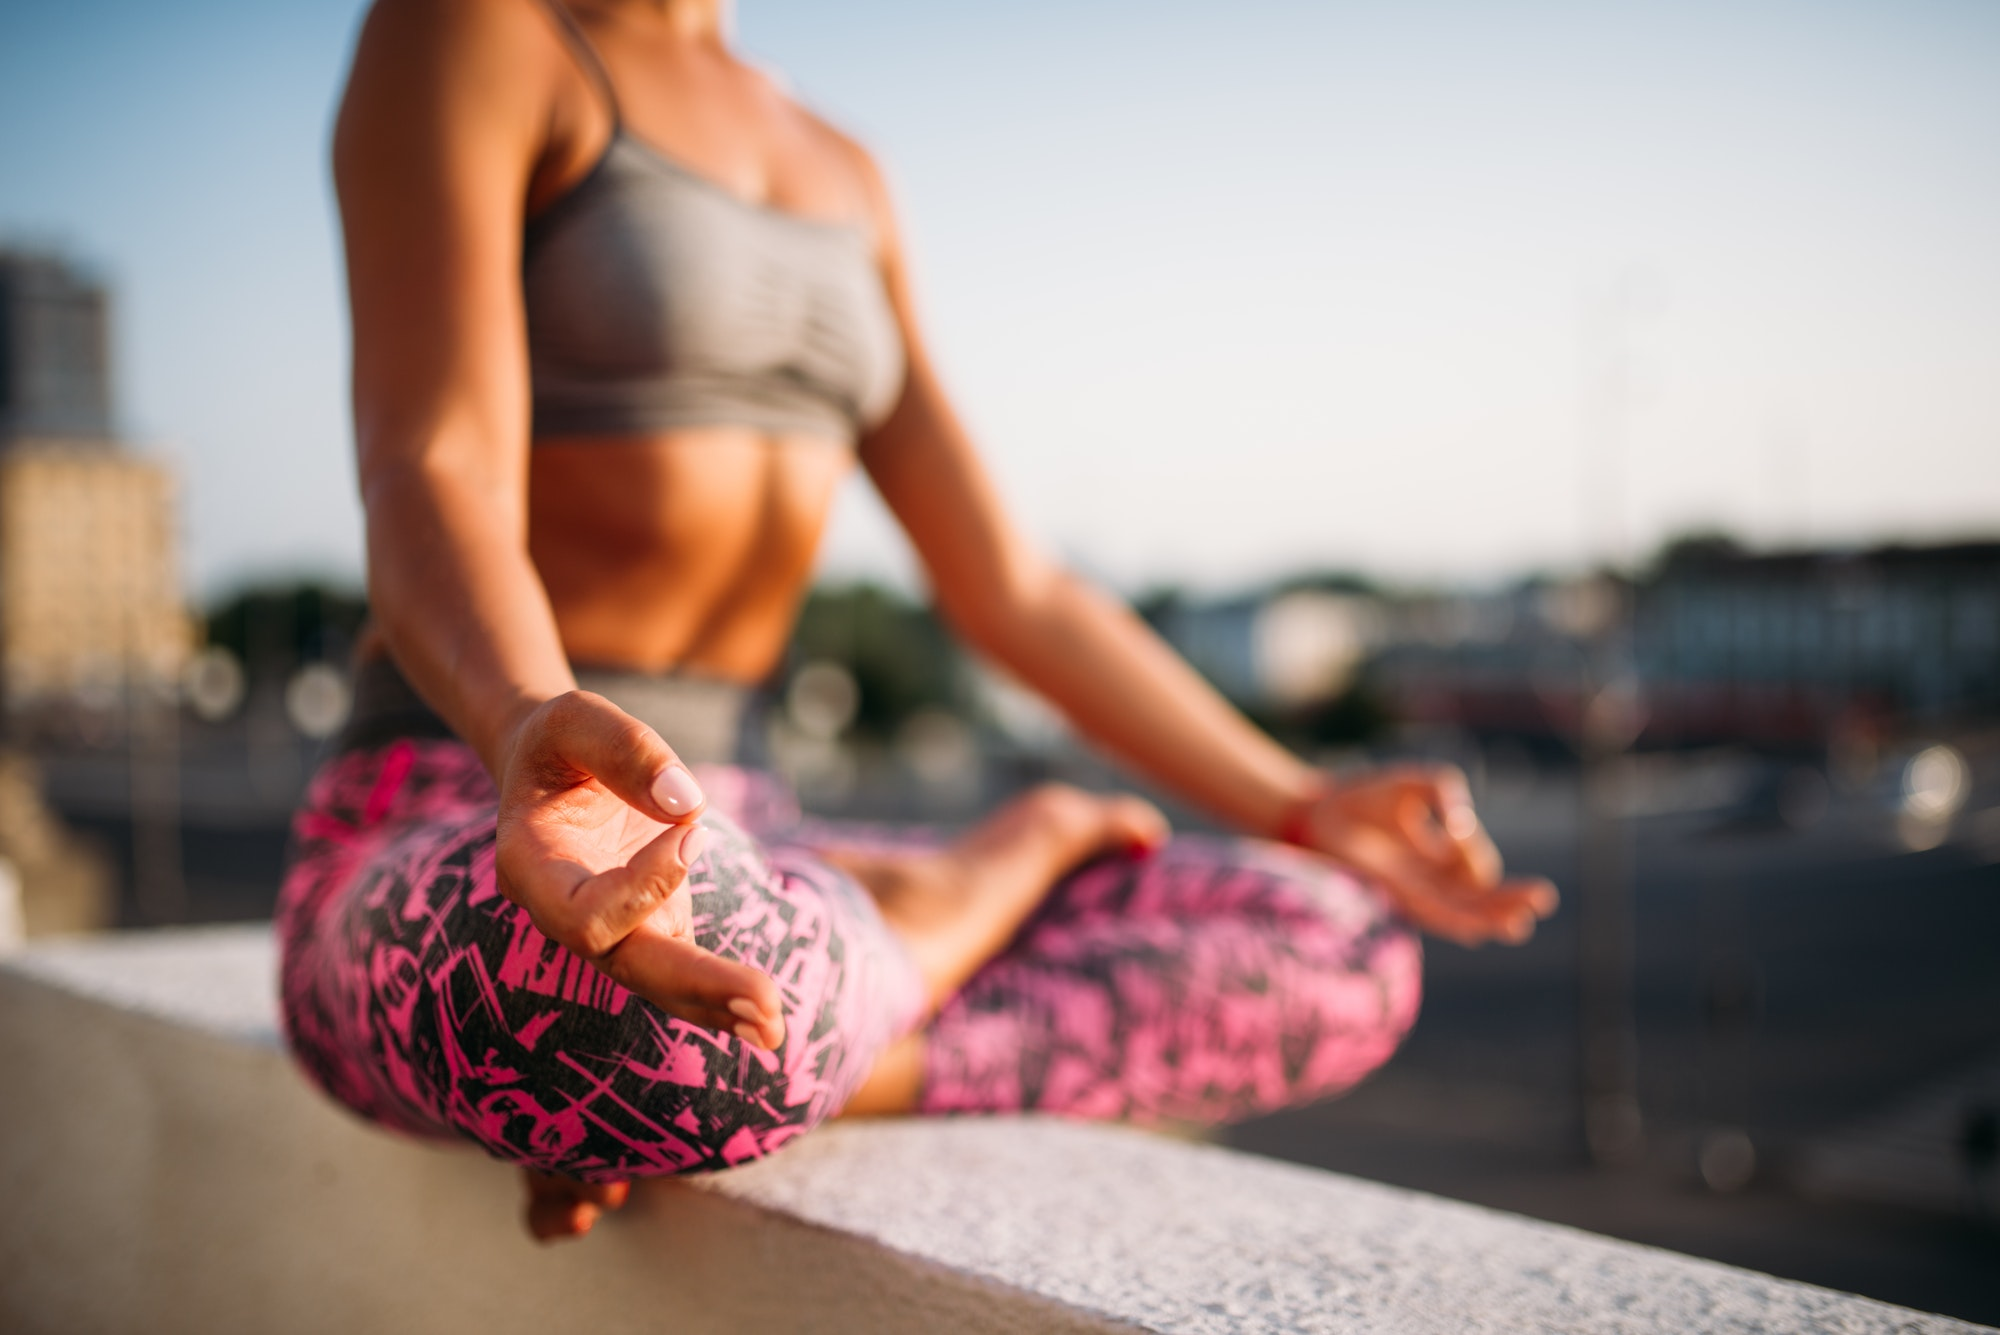 Female person, relaxation in yoga pose